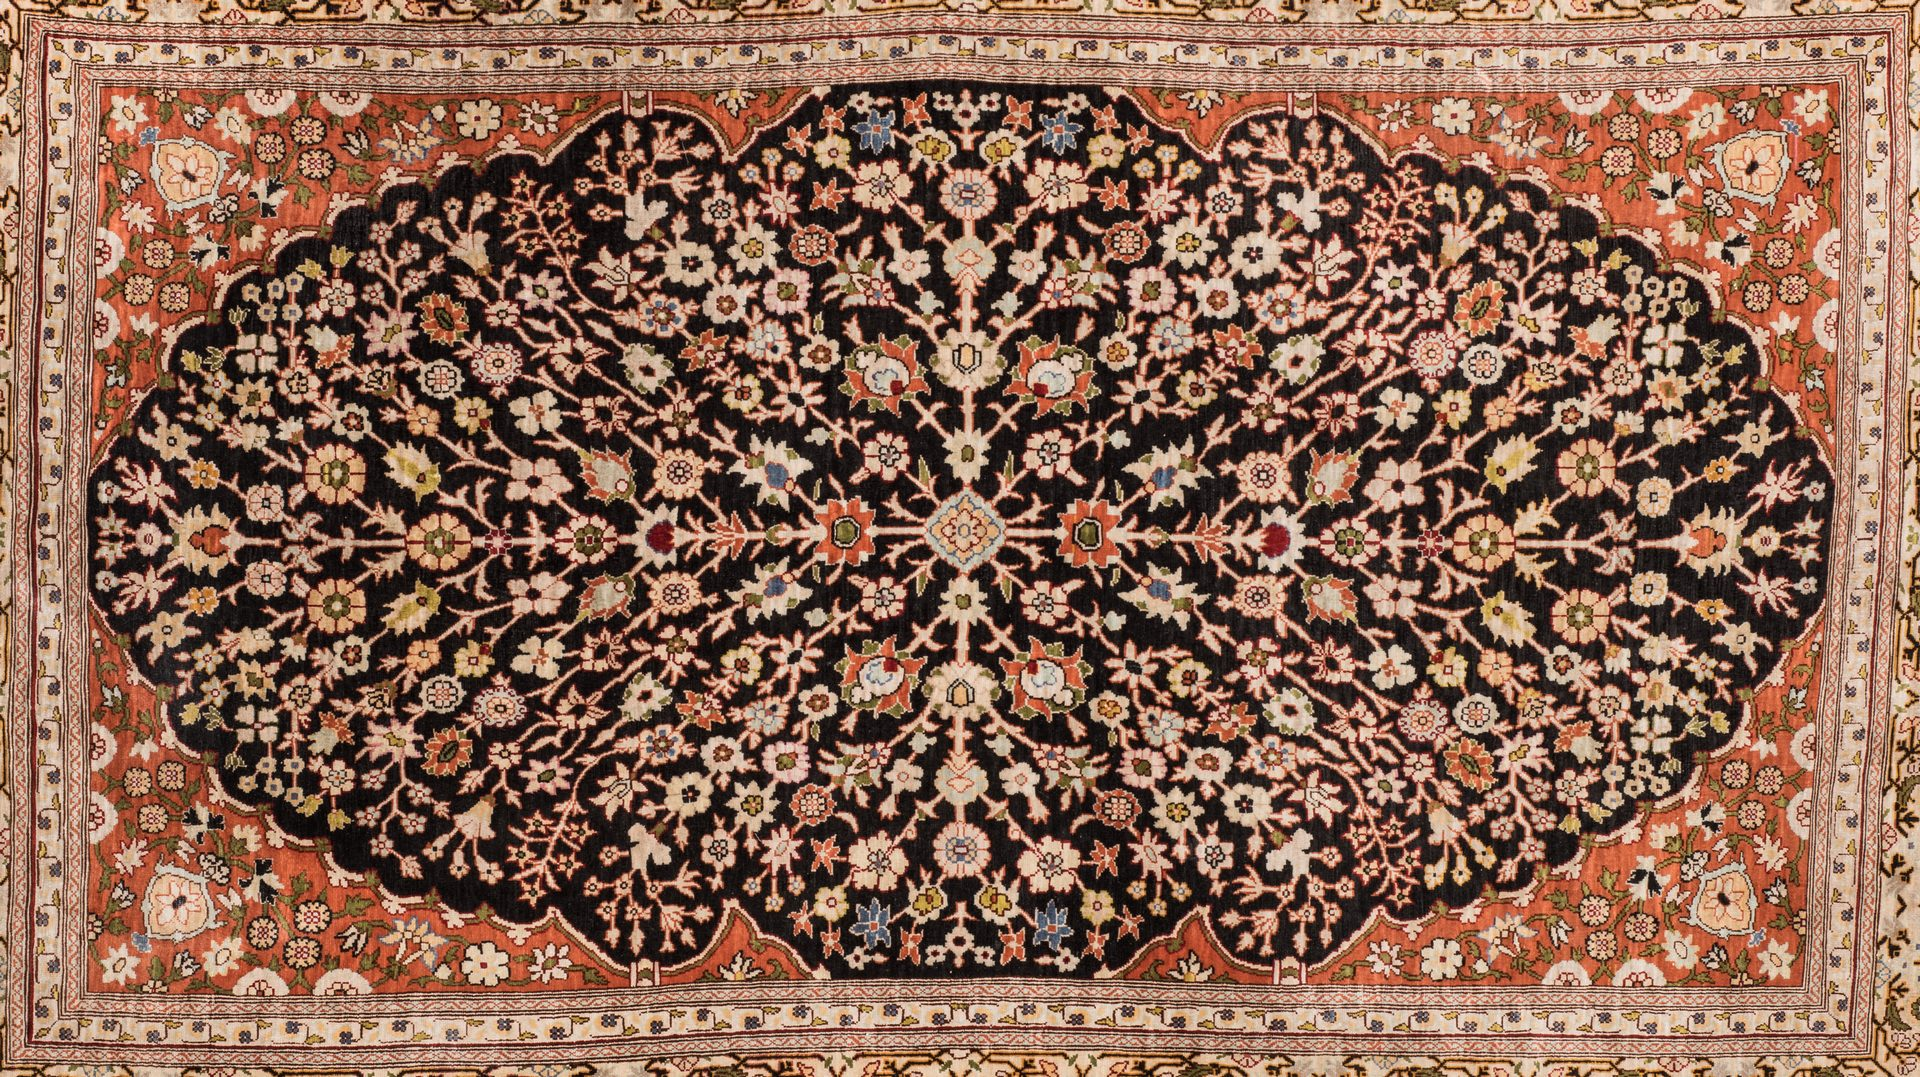 Lot 859: Finely Woven Persian Silk Rug